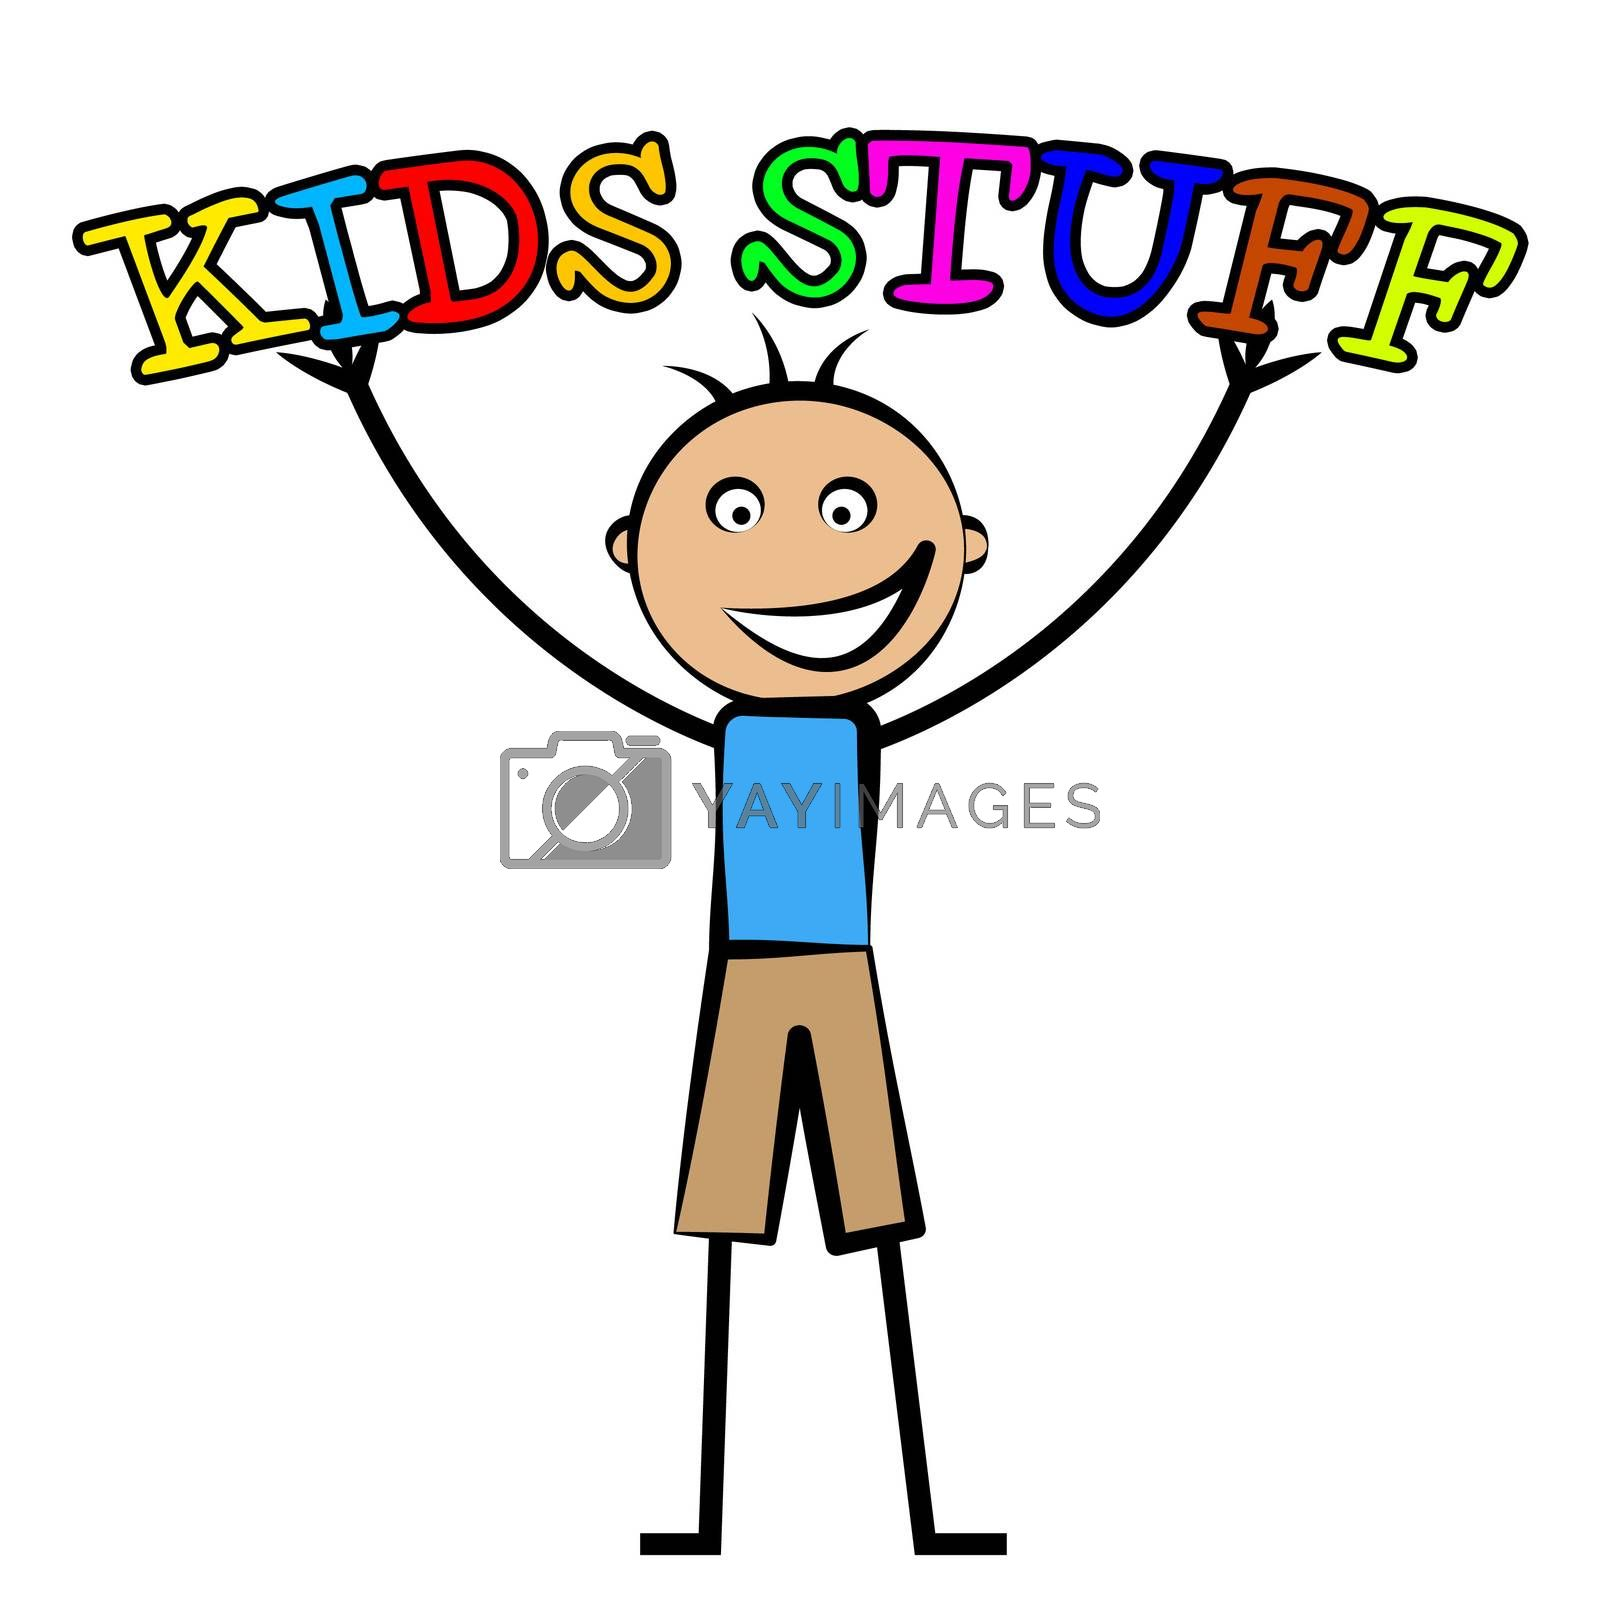 Kids Stuff Represents Free Time And Child by stuartmiles